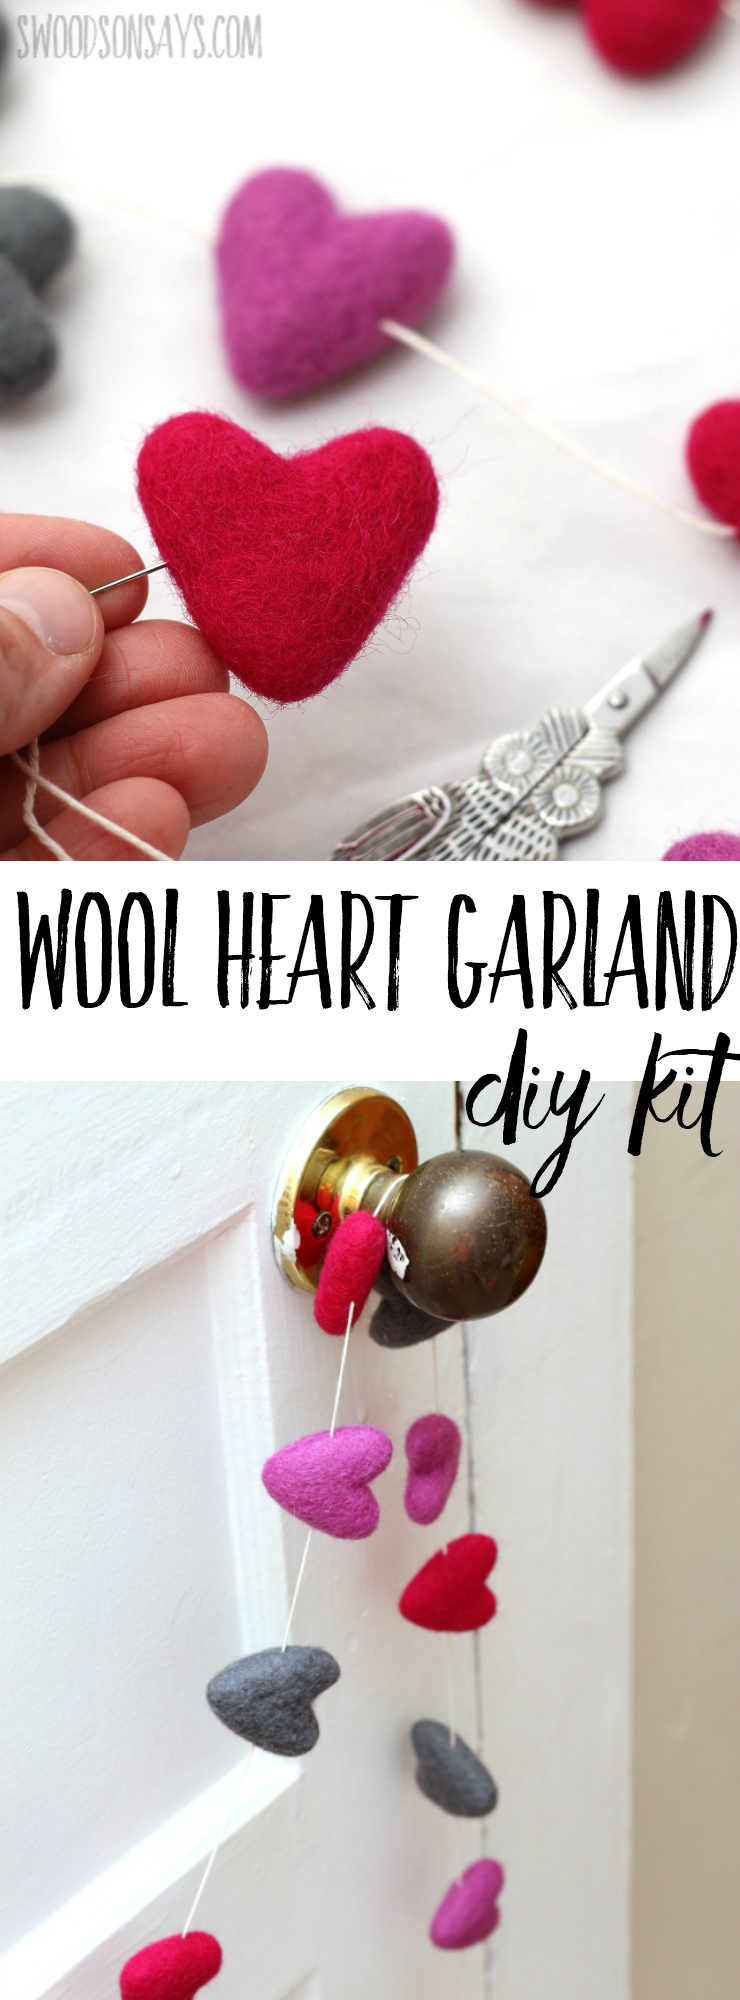 Simple Valentine's Day decor ideas can be beautiful, too! Check out this needle felted wool heart garland kit; it takes less than 10 minutes to make and you can choose your colors! #valentinesday #diyvalentine #valentinecraft